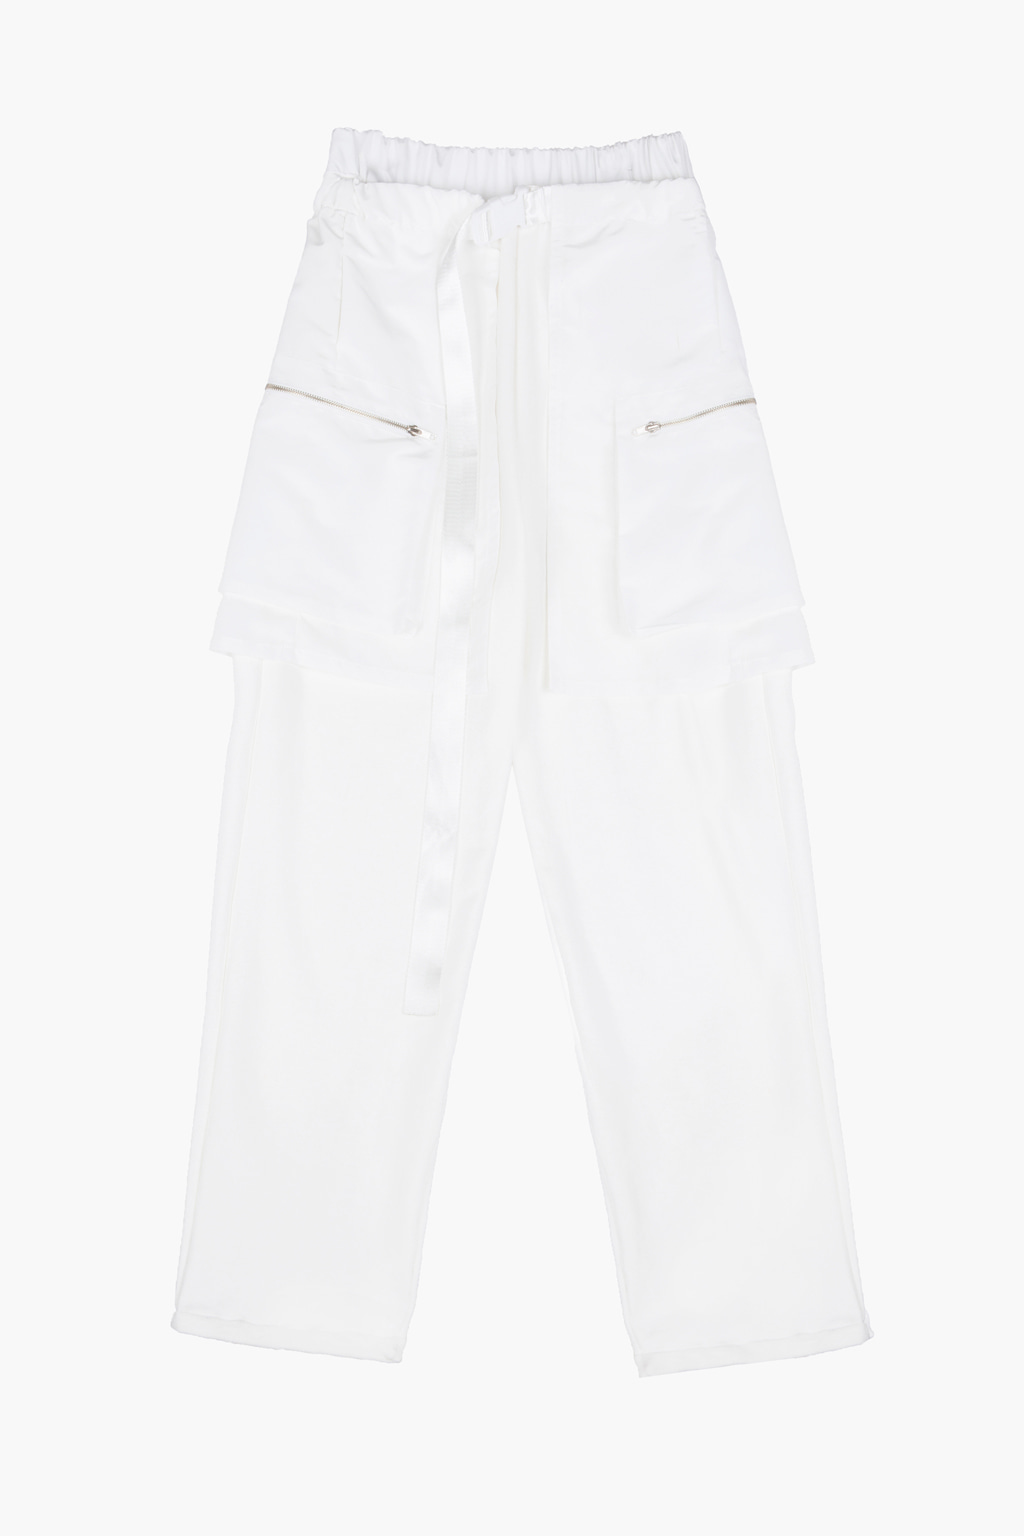 Layered Utility Cargo Skirt  Lounge Pants - white